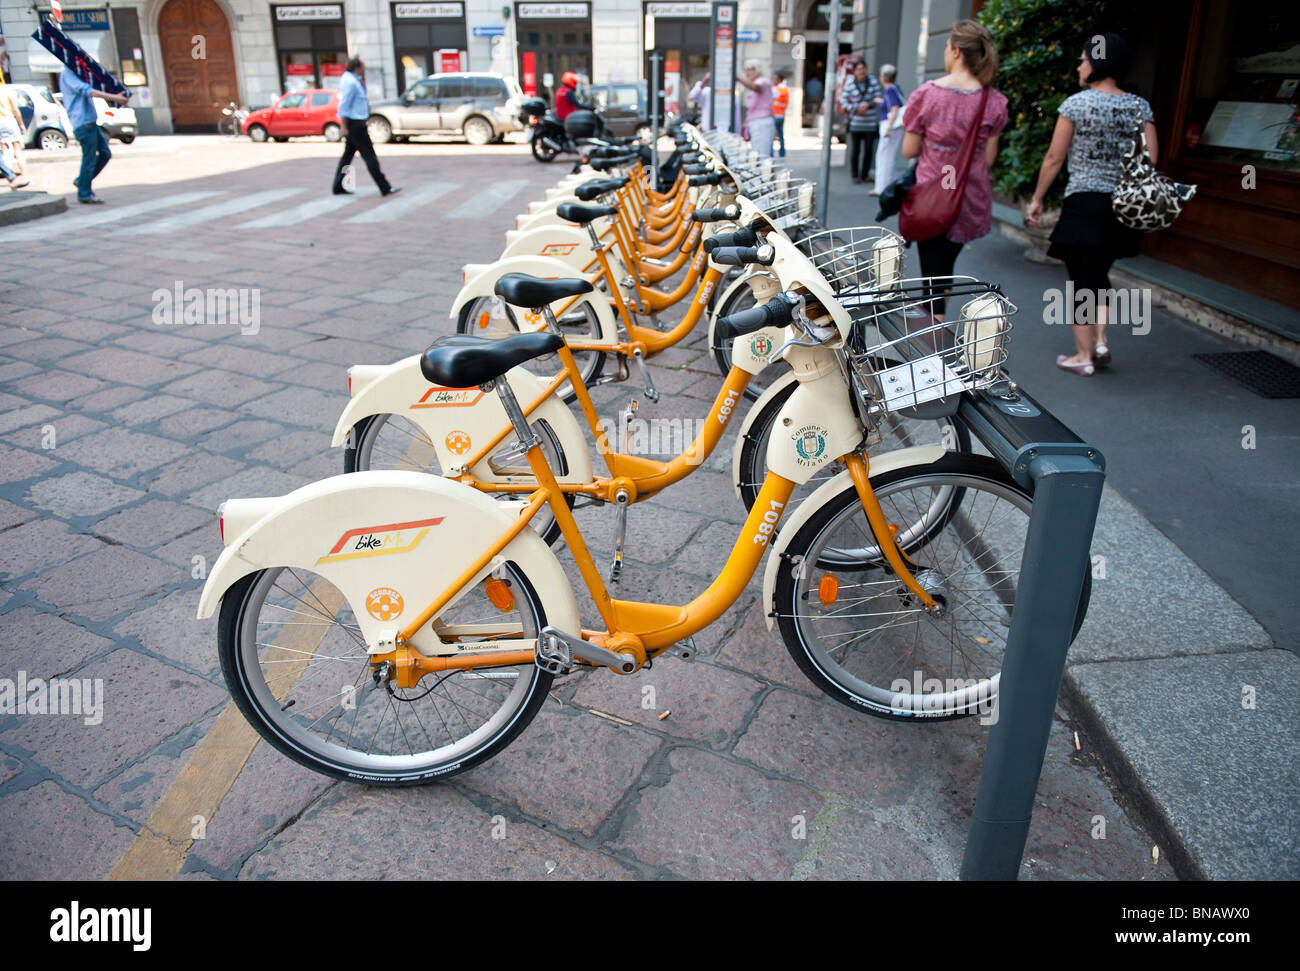 A BikeMi station  in Milano Italy, part of the city Bike sharing service - Stock Image